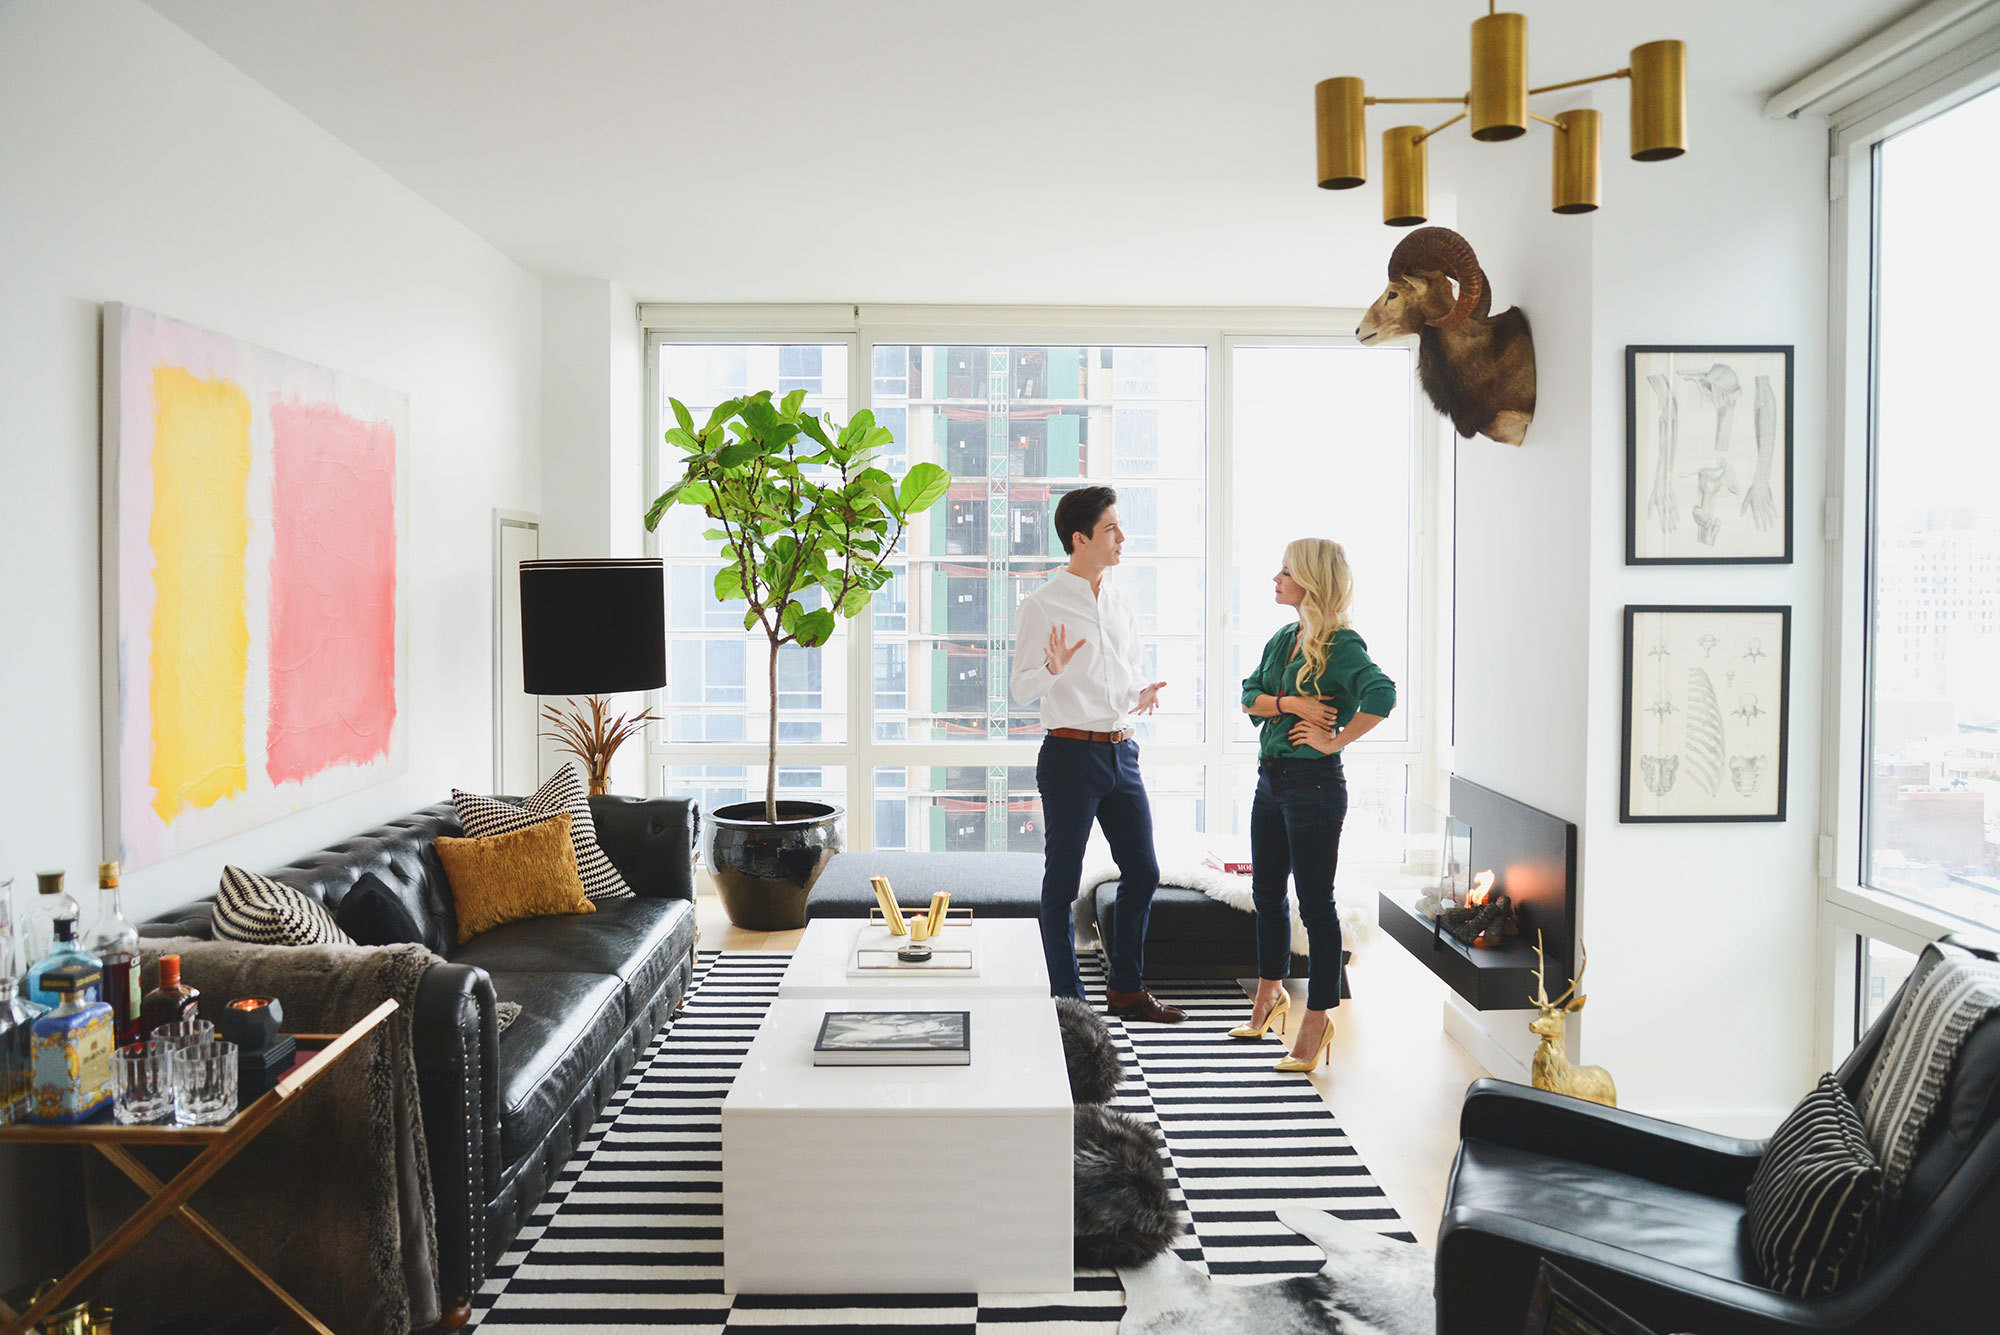 Santos and DwellStudio founder Christiane Lemieux discuss the pattern, texture, and color on display in the living room.